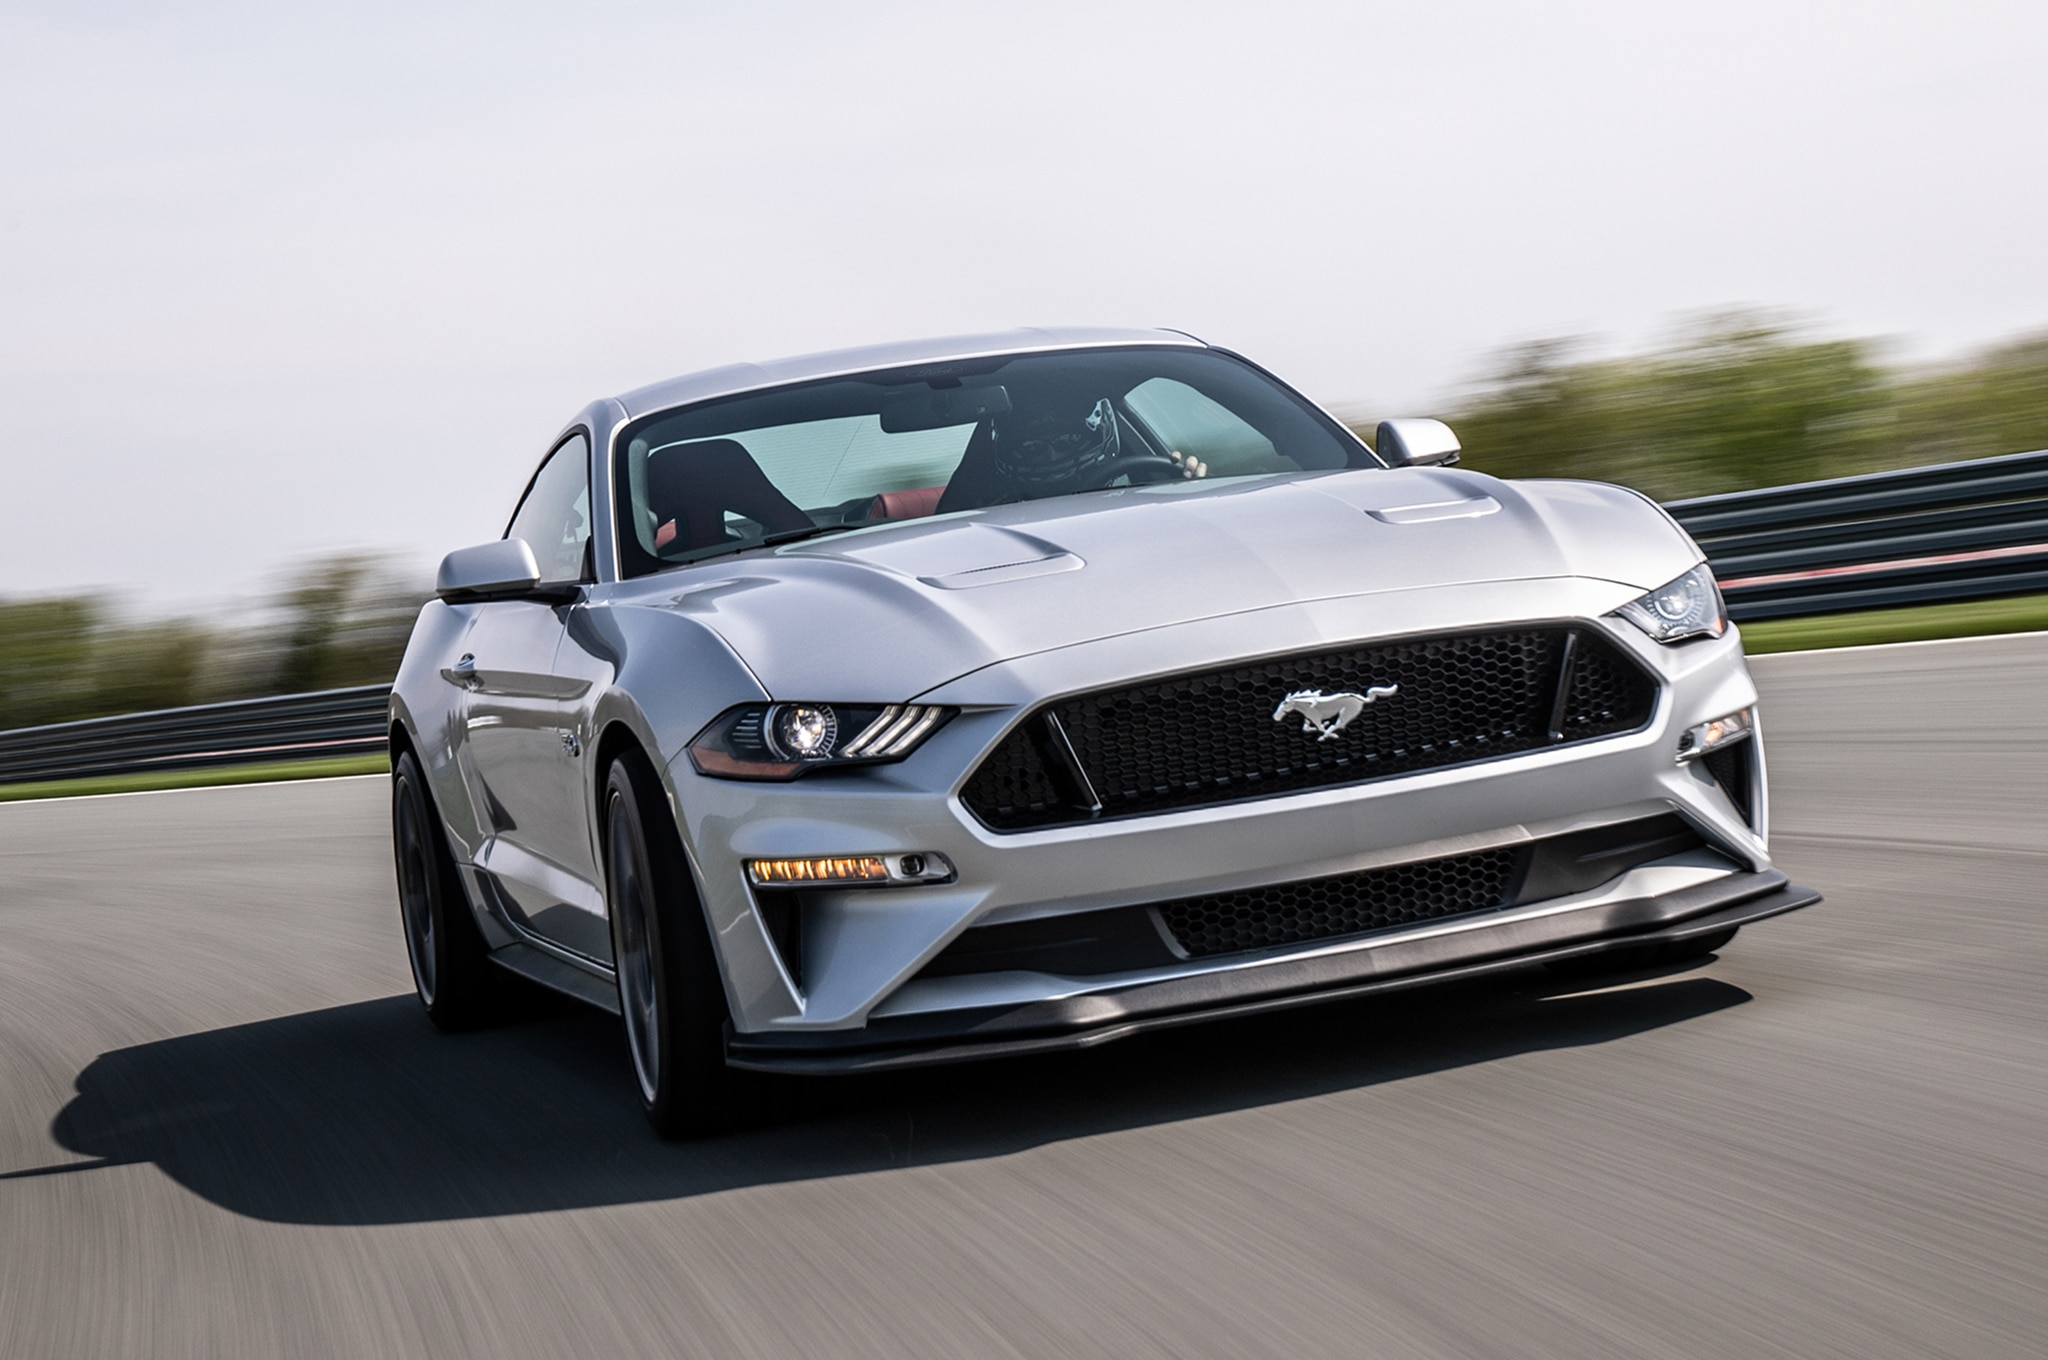 2018 Ford Mustang GT Performance Pack 2 Front Three Quarter In Motion 01